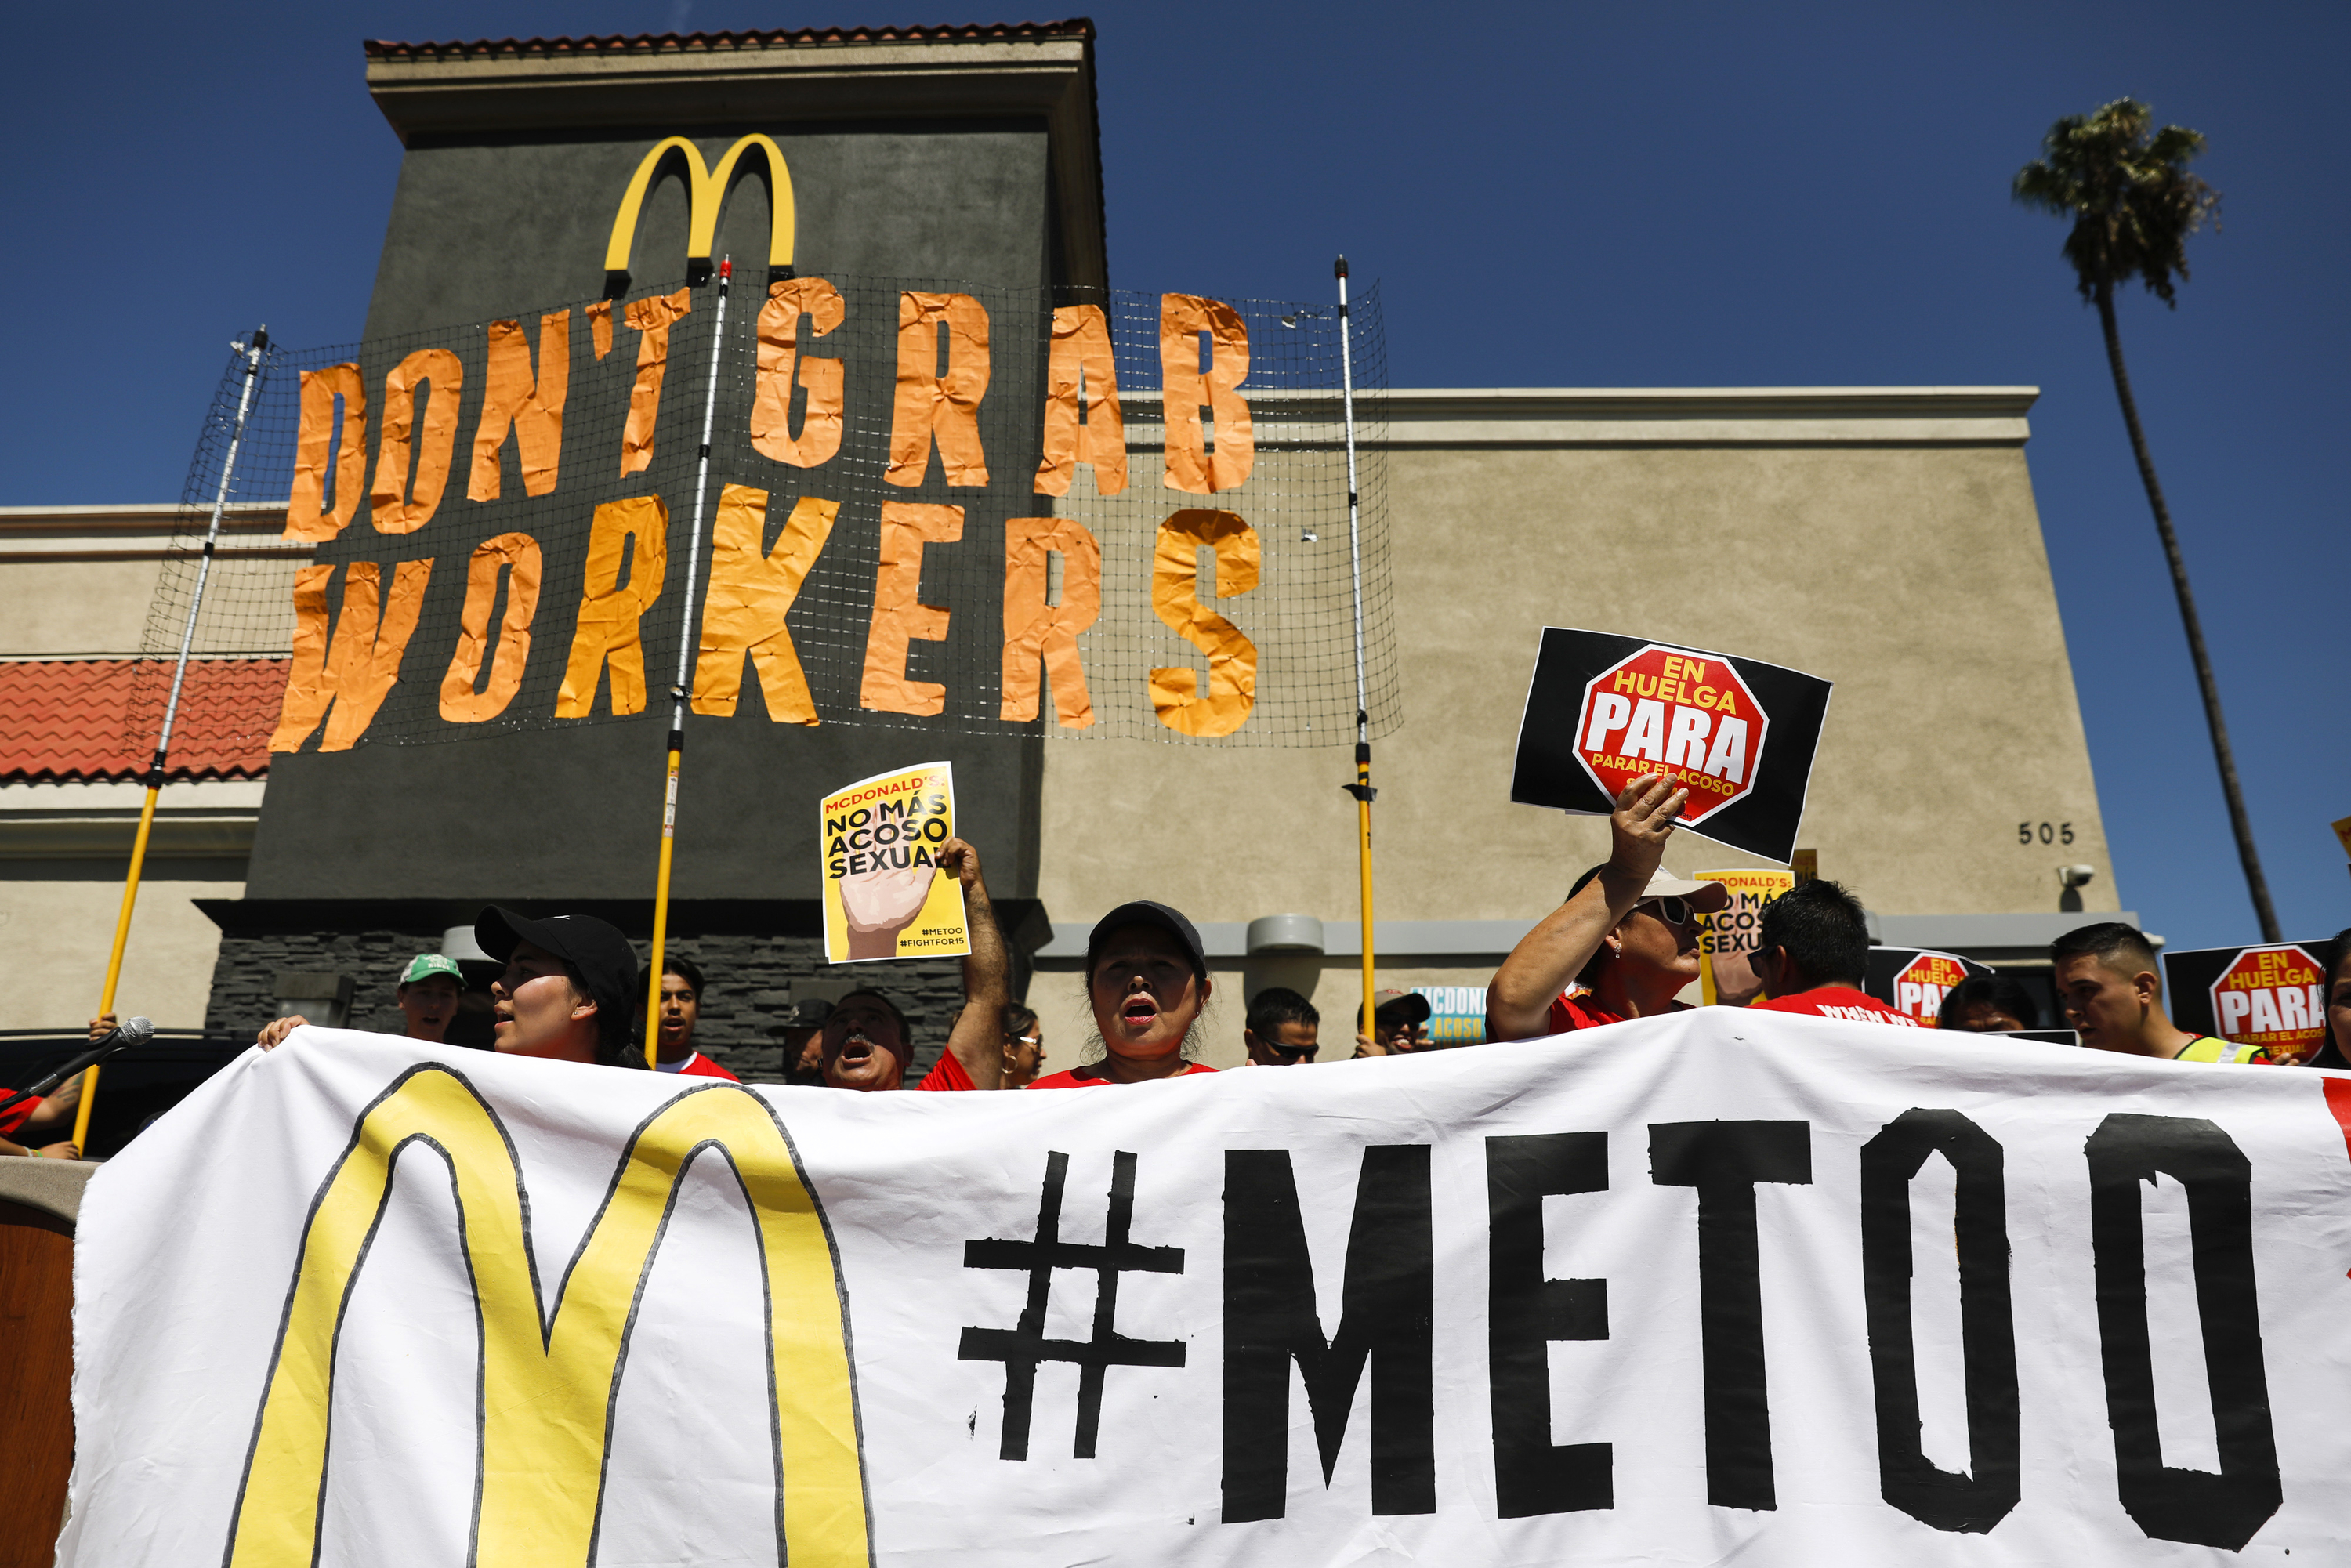 McDonald's revamps its harassment policy as criticism mounts